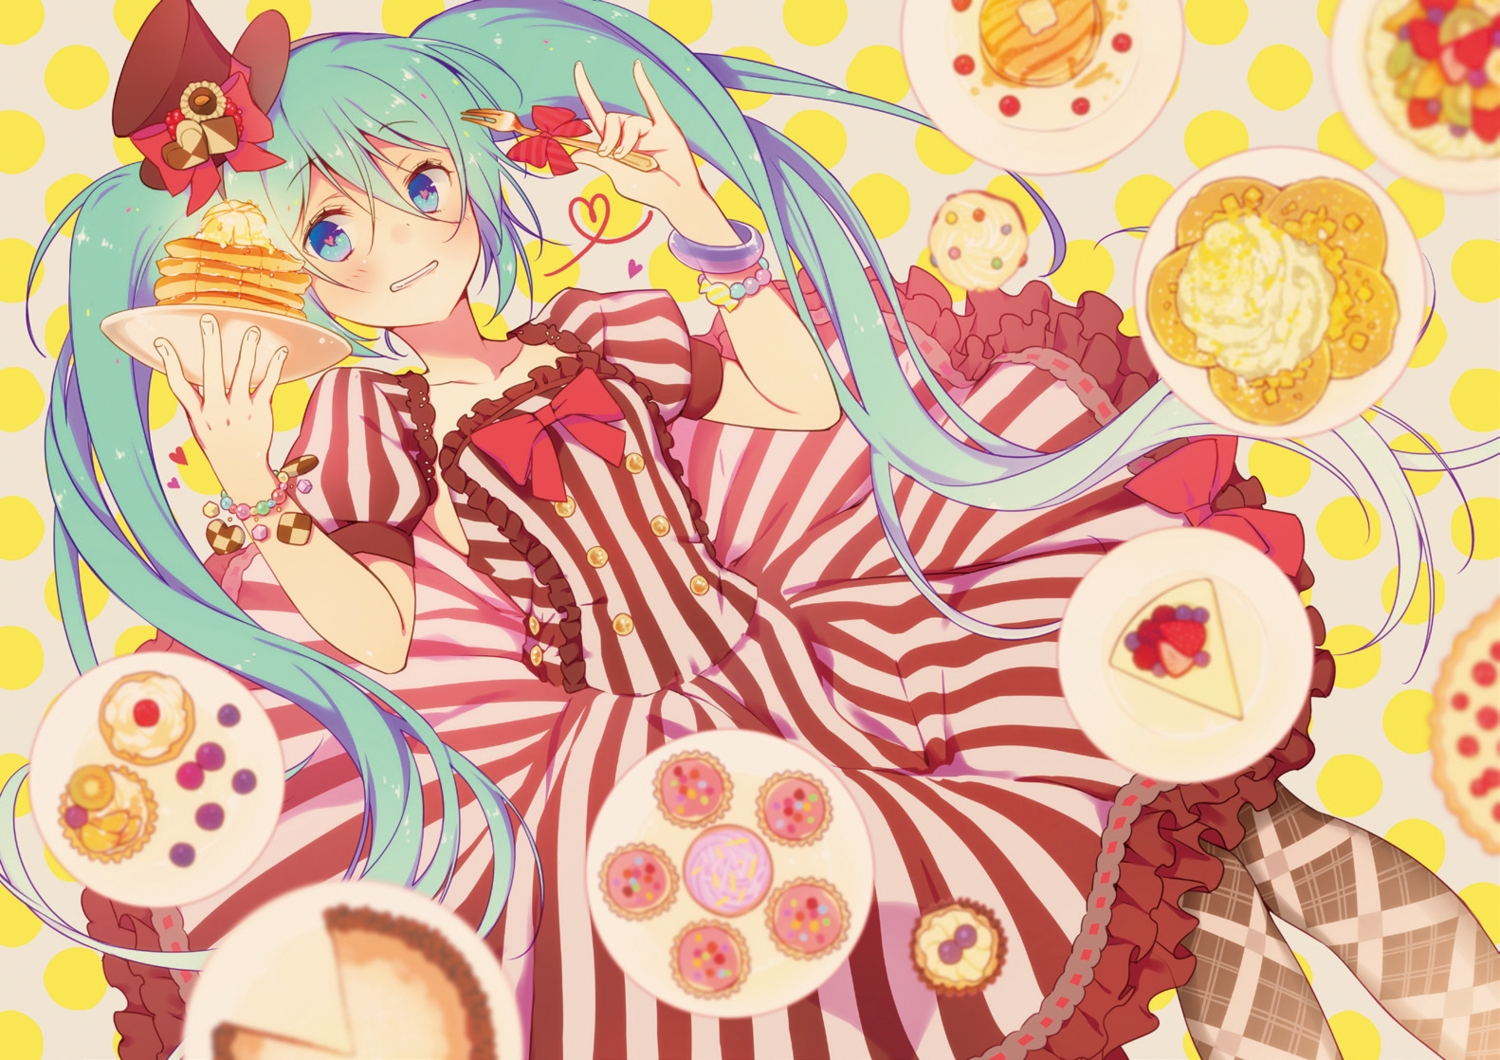 aqua_hair blue_eyes dress food hat hatsune_miku twintails vocaloid wogura wristwear